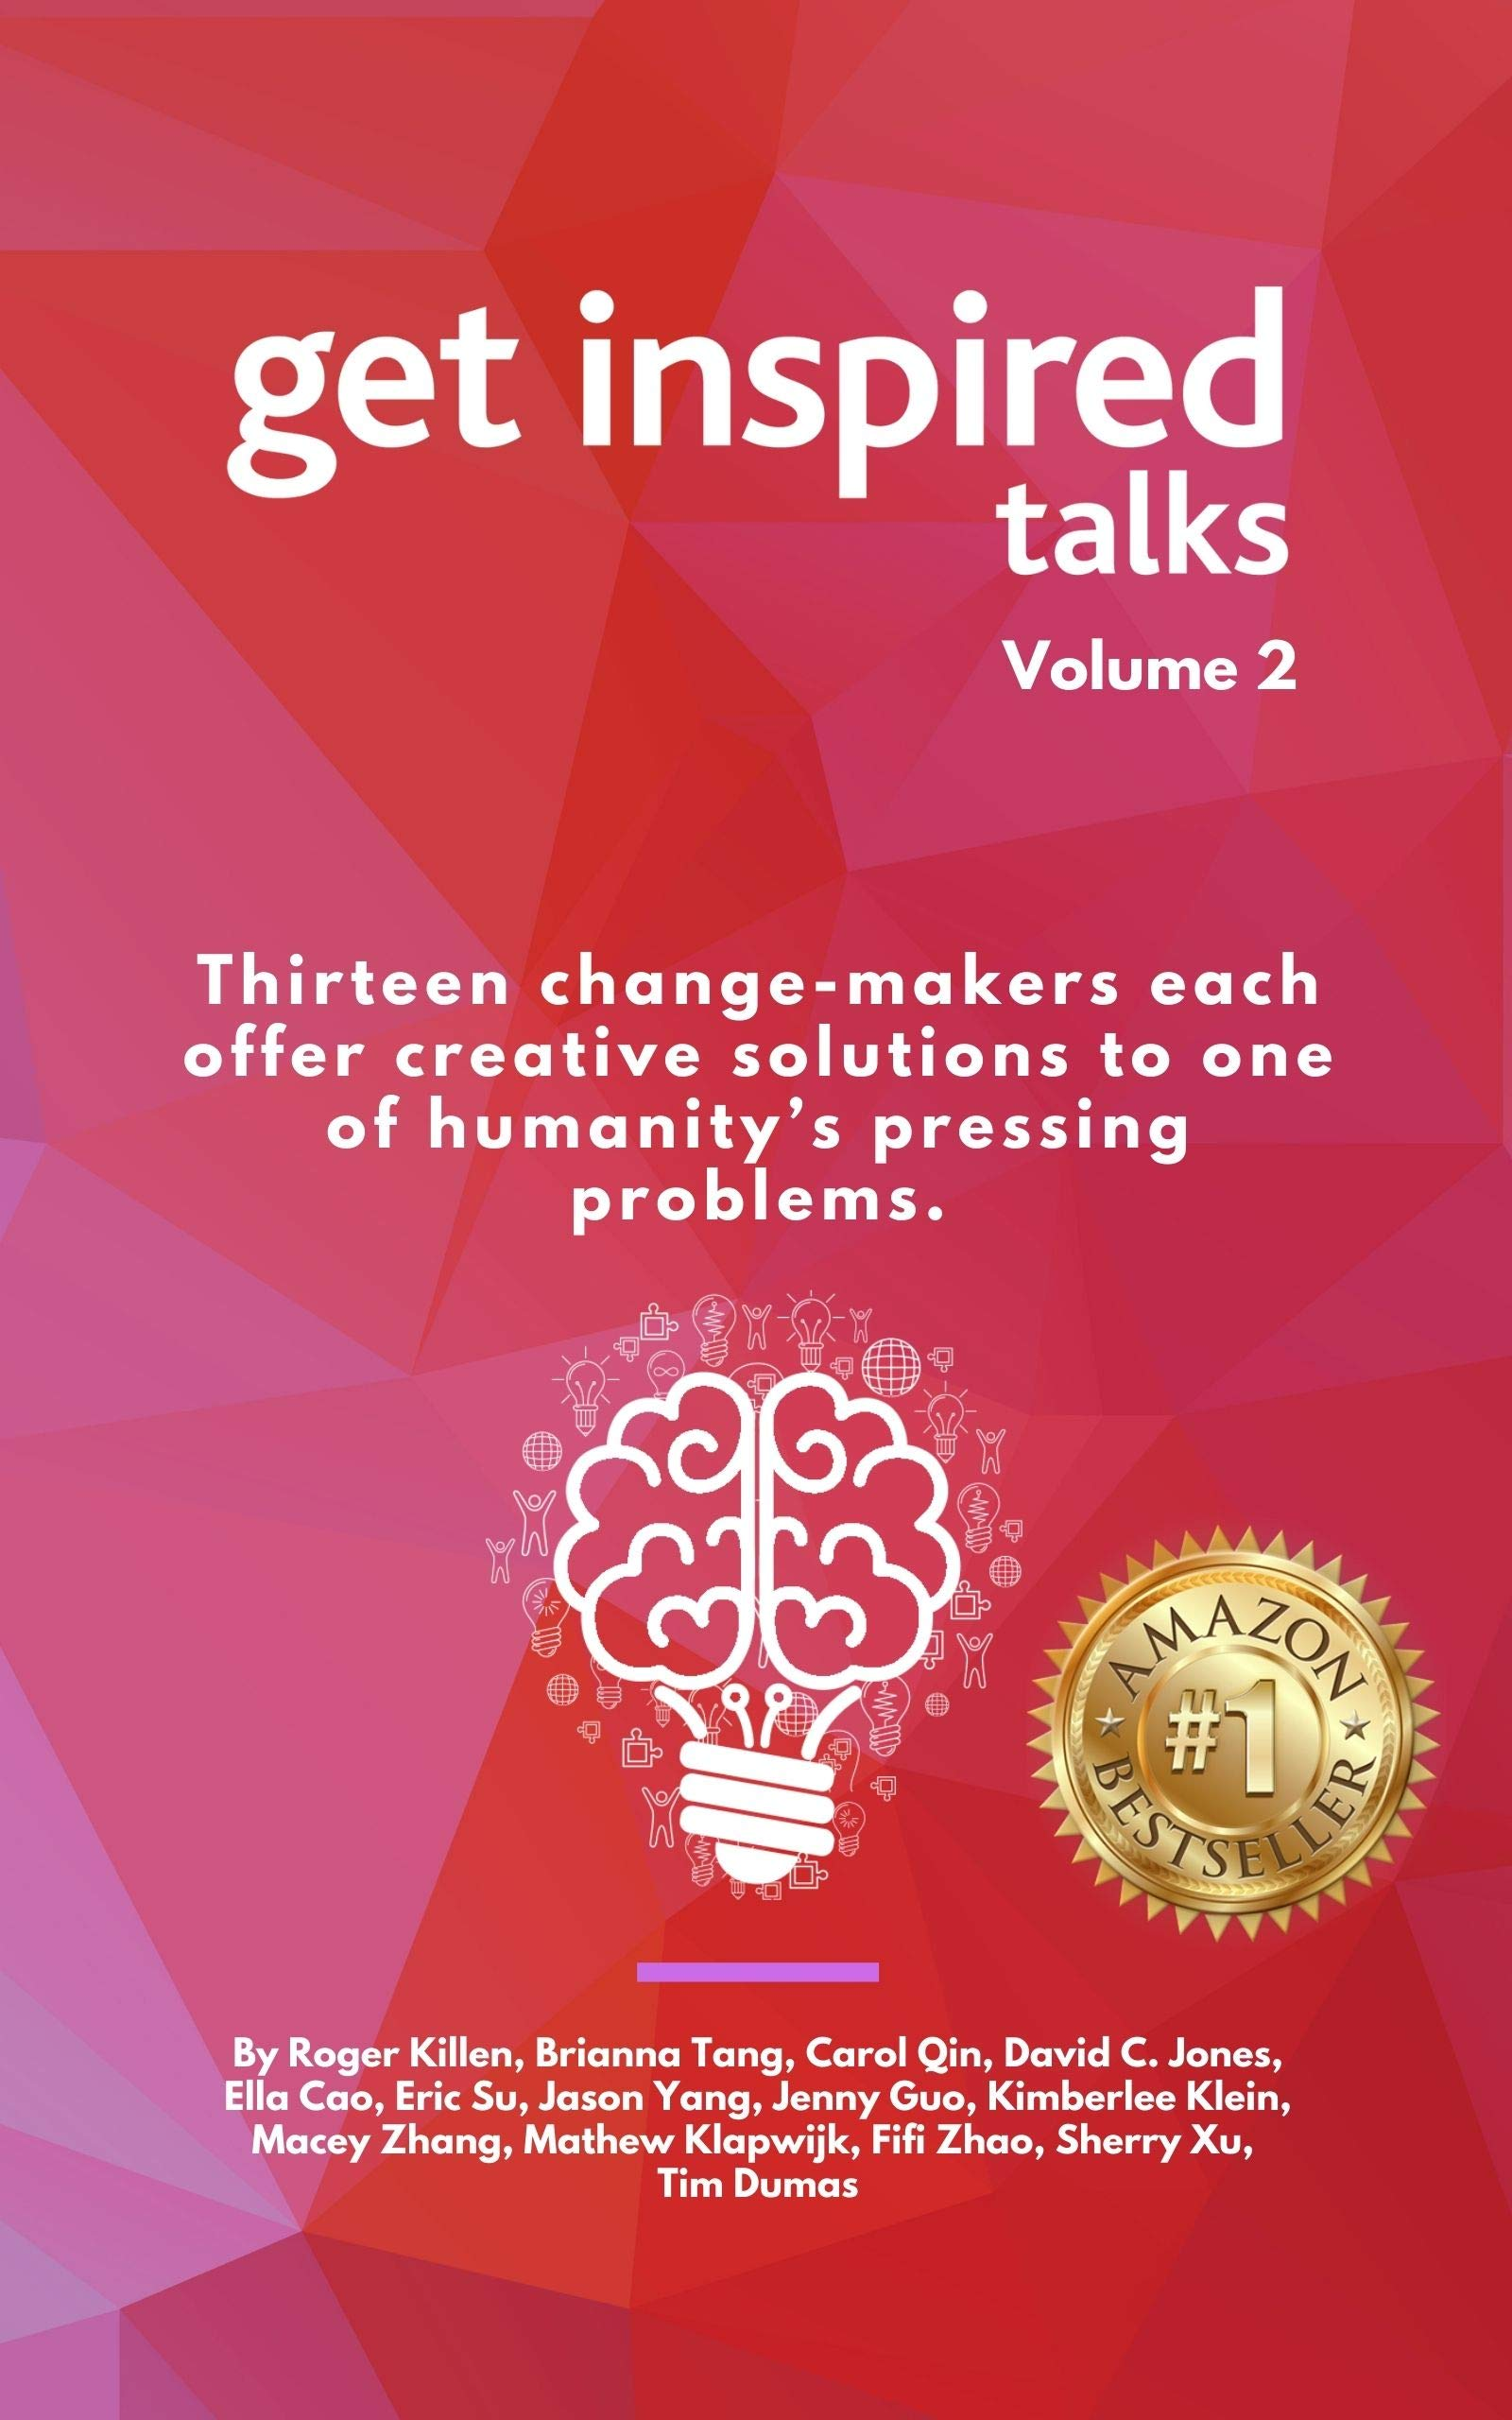 GET INSPIRED TALKS (Volume 2): Thirteen change-makers each offer creative solutions to one of humanity's pressing problems.